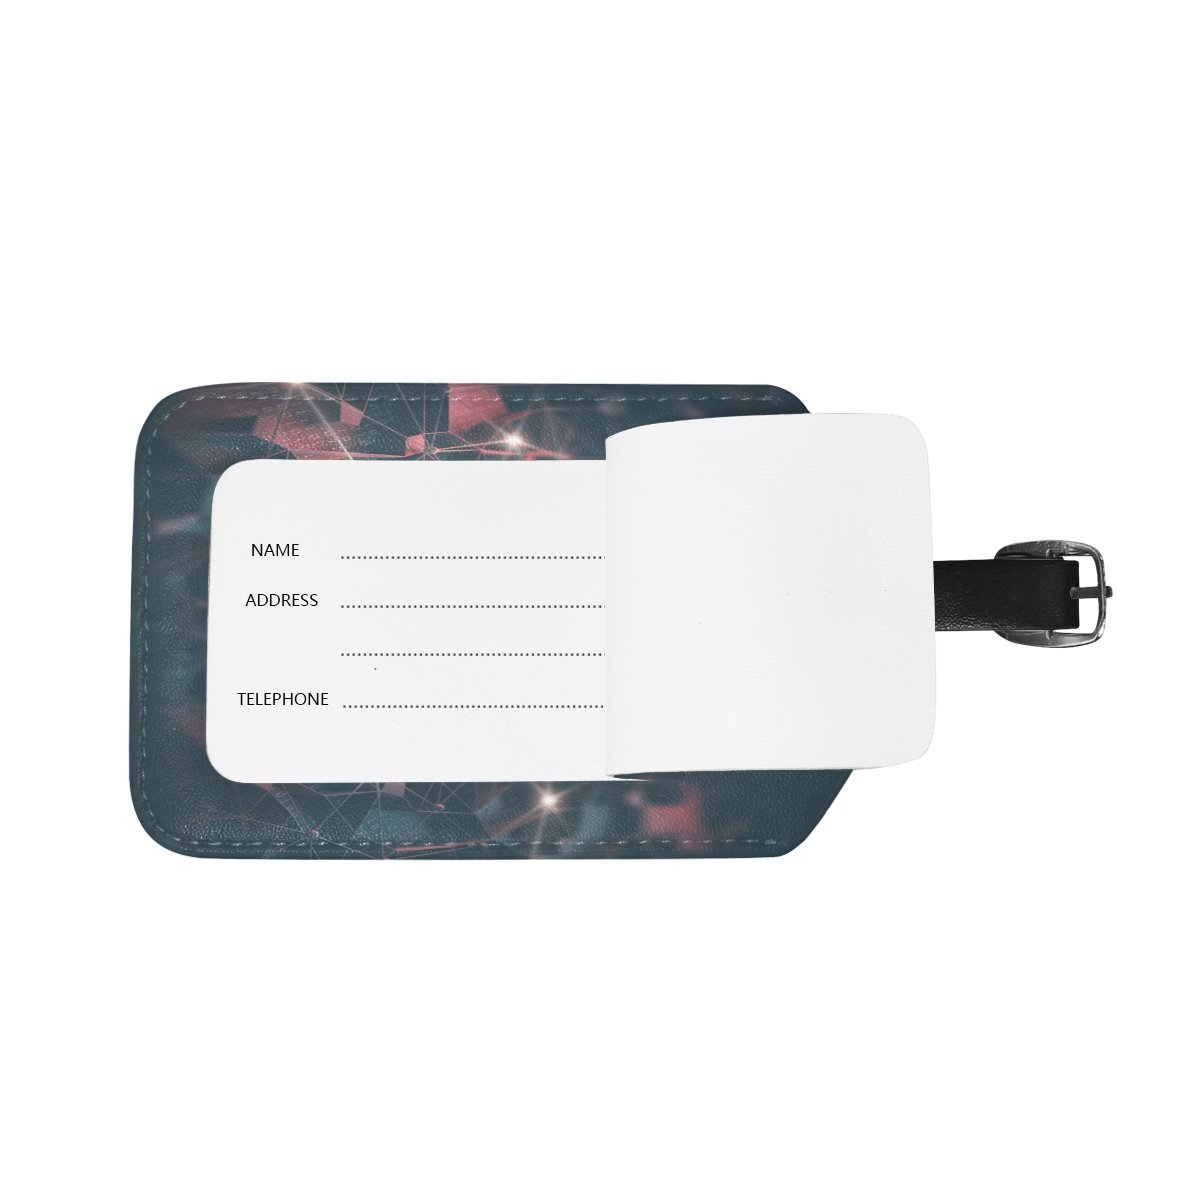 Saobao Travel Luggage Tag Artificial Intelligence PU Leather Baggage Suitcase Travel ID Bag Tag 1Pcs